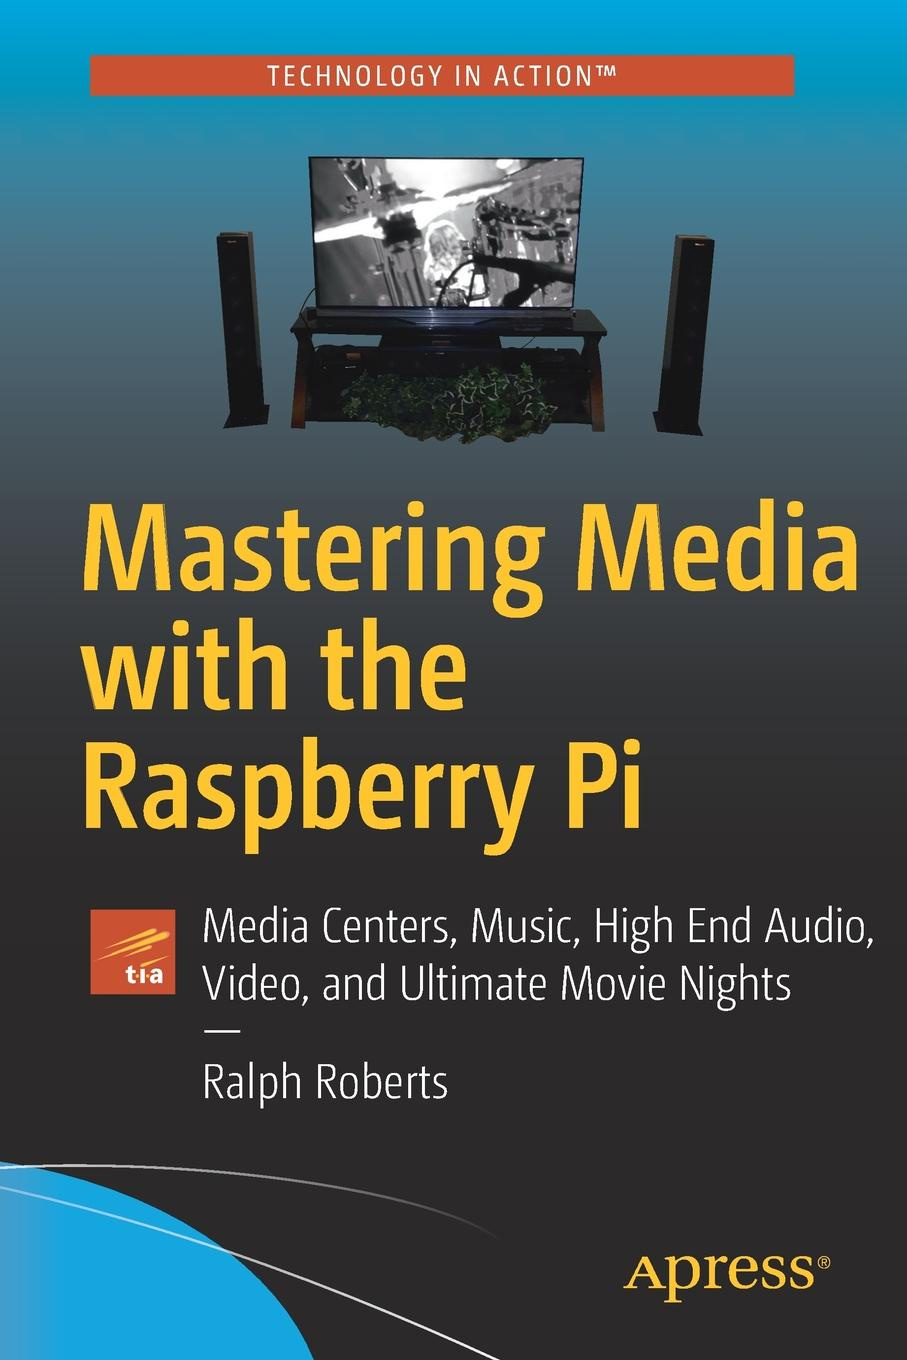 Ralph Roberts Mastering Media with the Raspberry Pi. Media Centers, Music, High End Audio, Video, and Ultimate Movie Nights